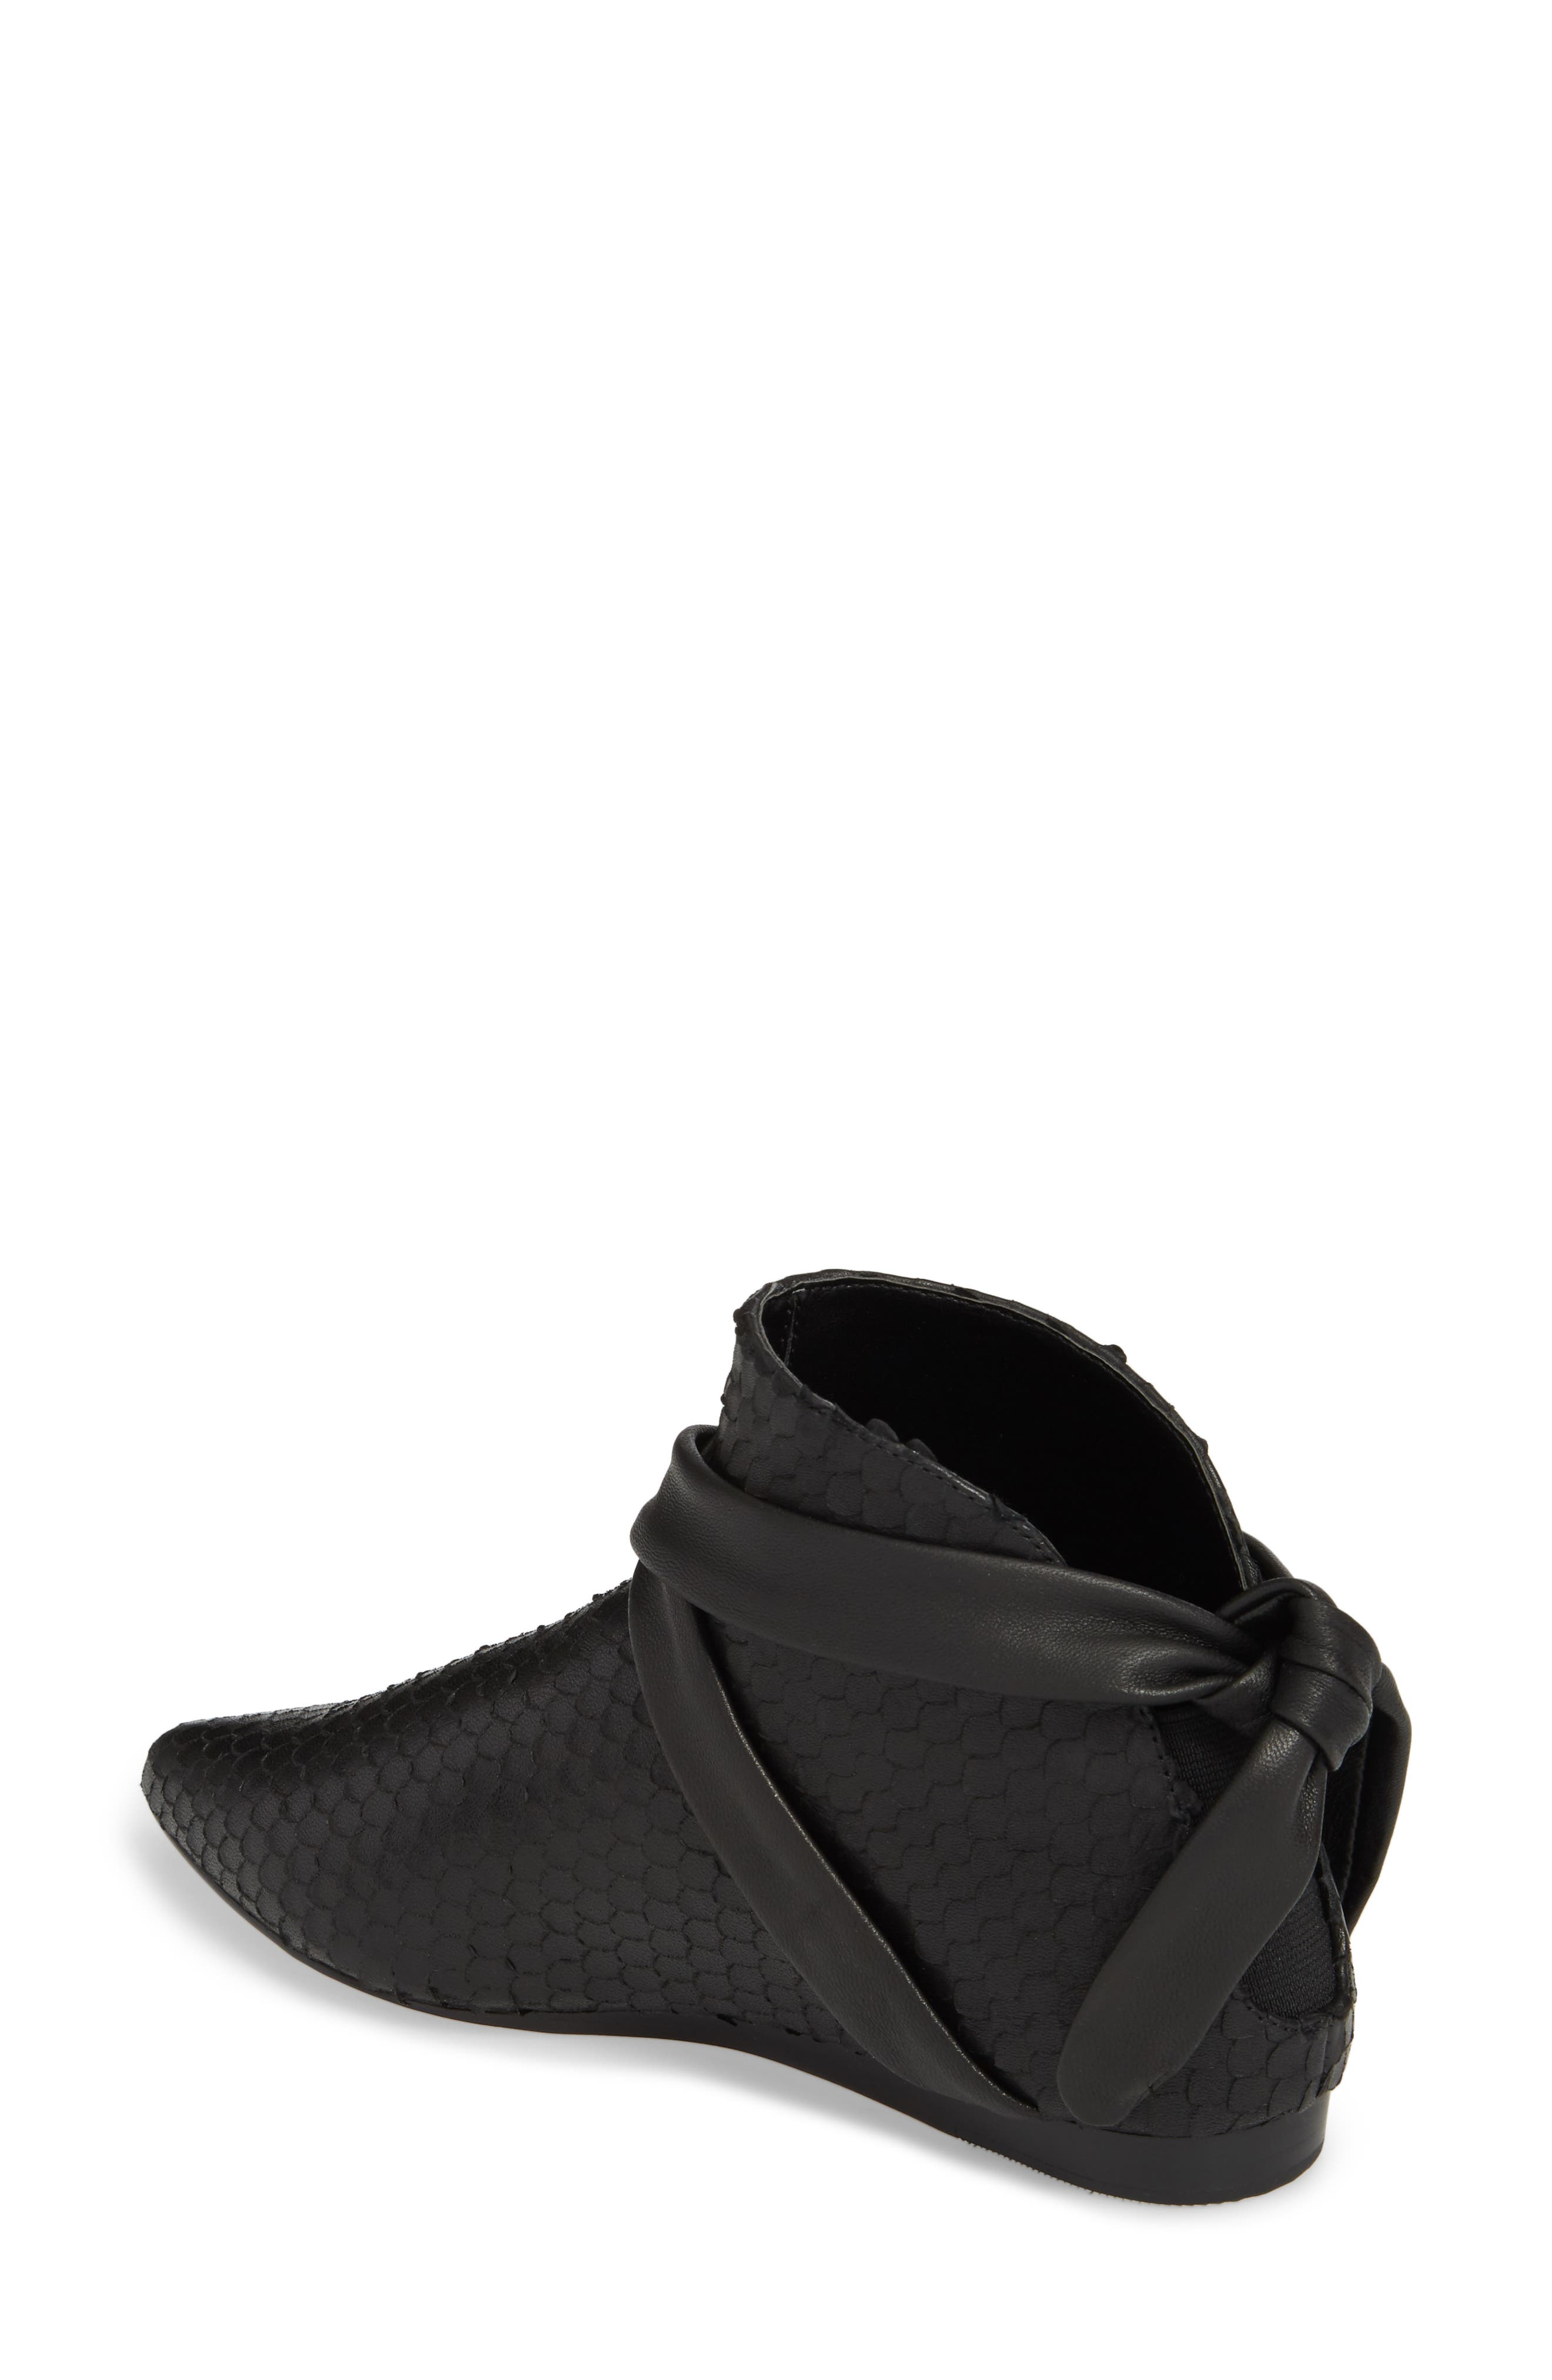 M4D3 Derby Bootie,                             Alternate thumbnail 2, color,                             Black Leather